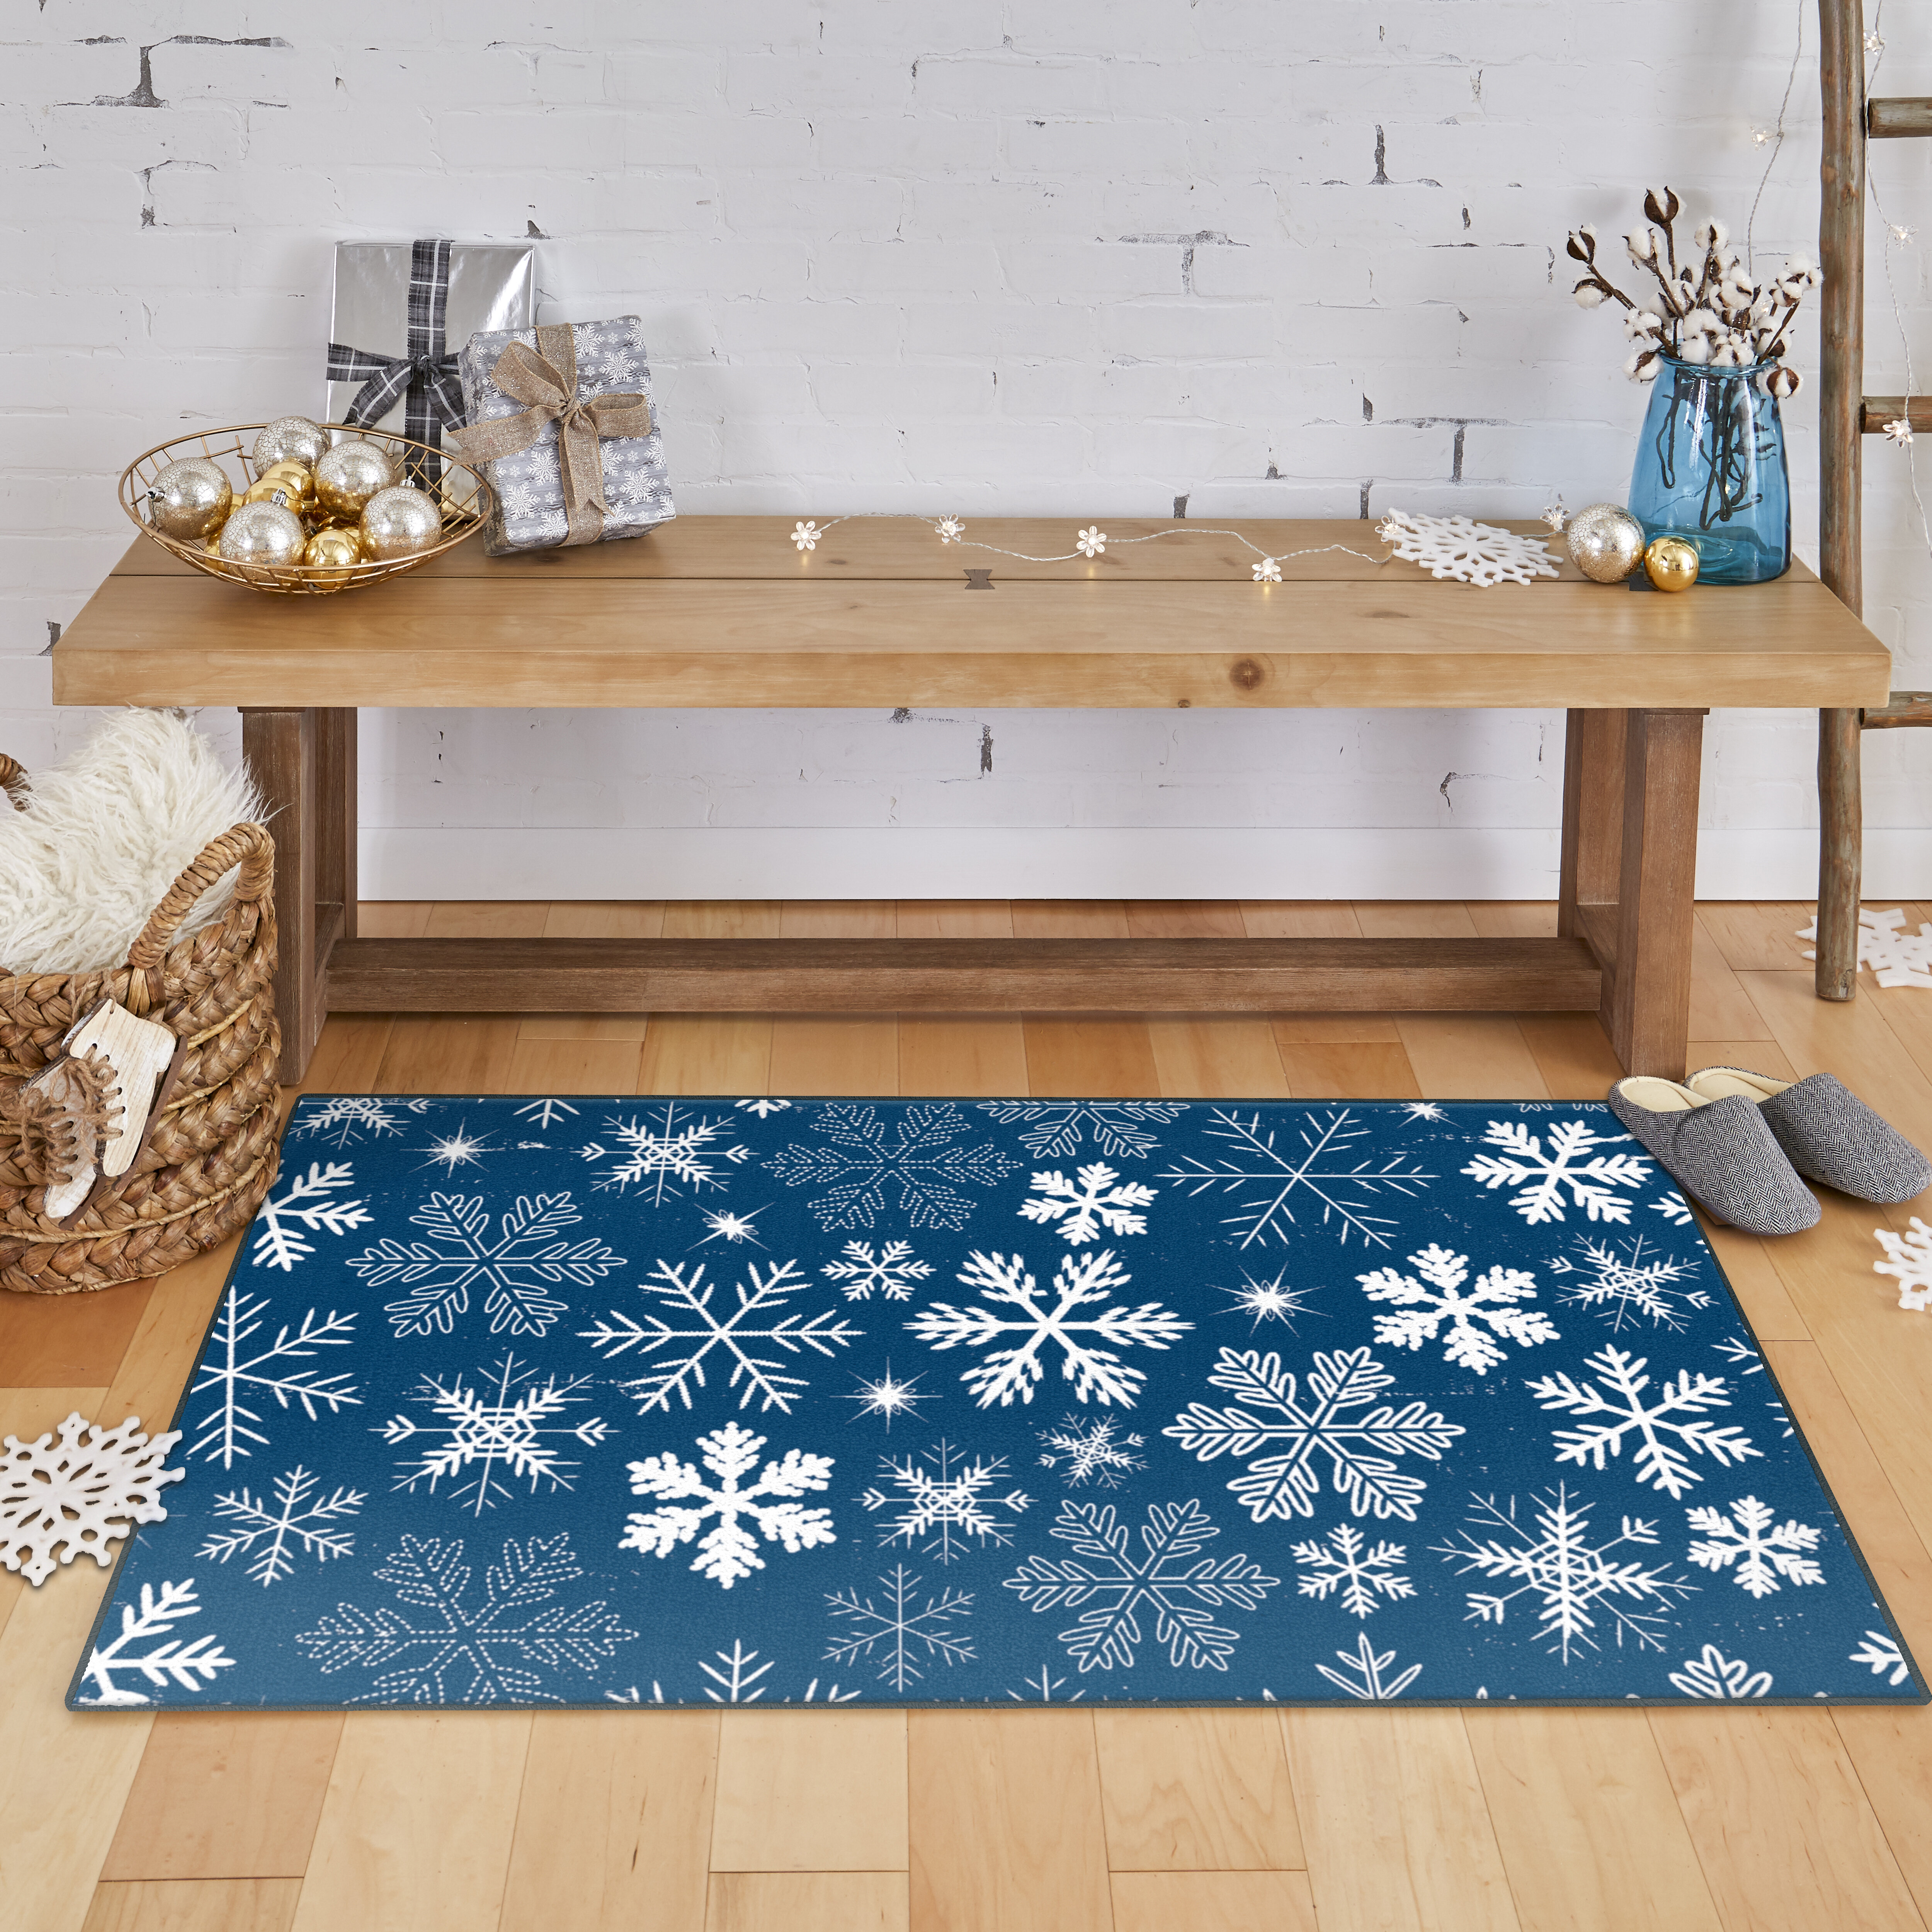 The Holiday Aisle Triplett Snowflakes Denim Area Rug Reviews Wayfair